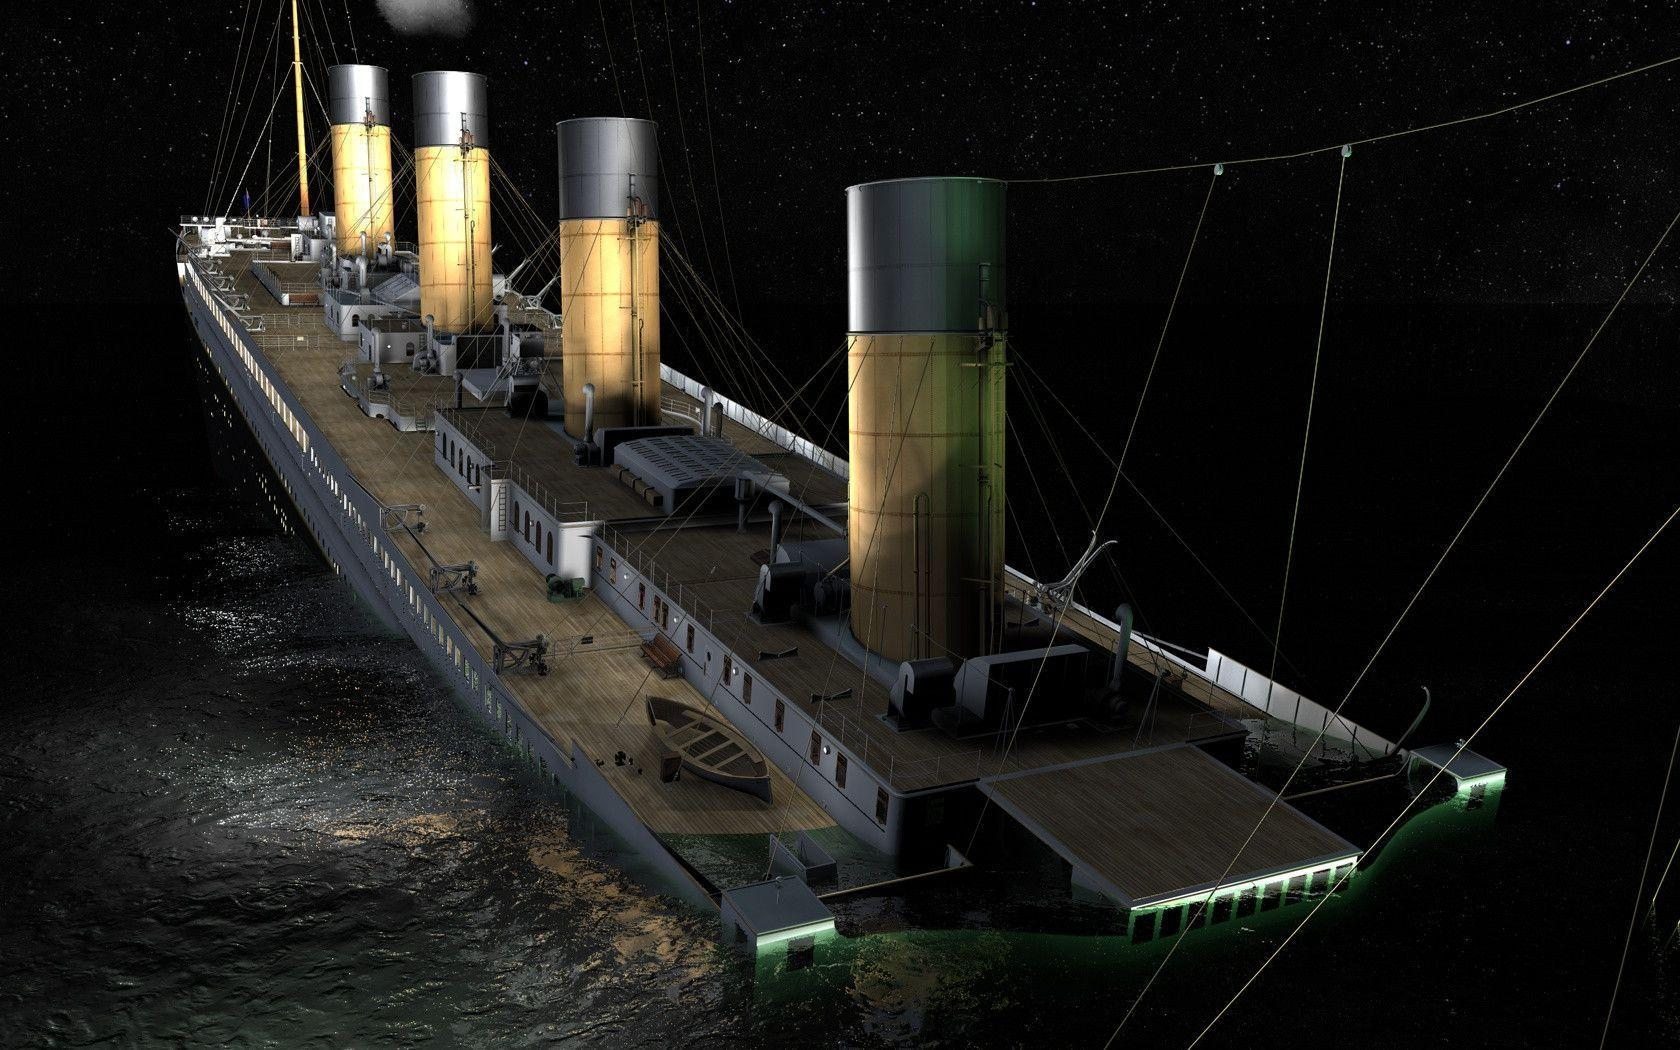 Renders of sinking Titanic image - Mod DB